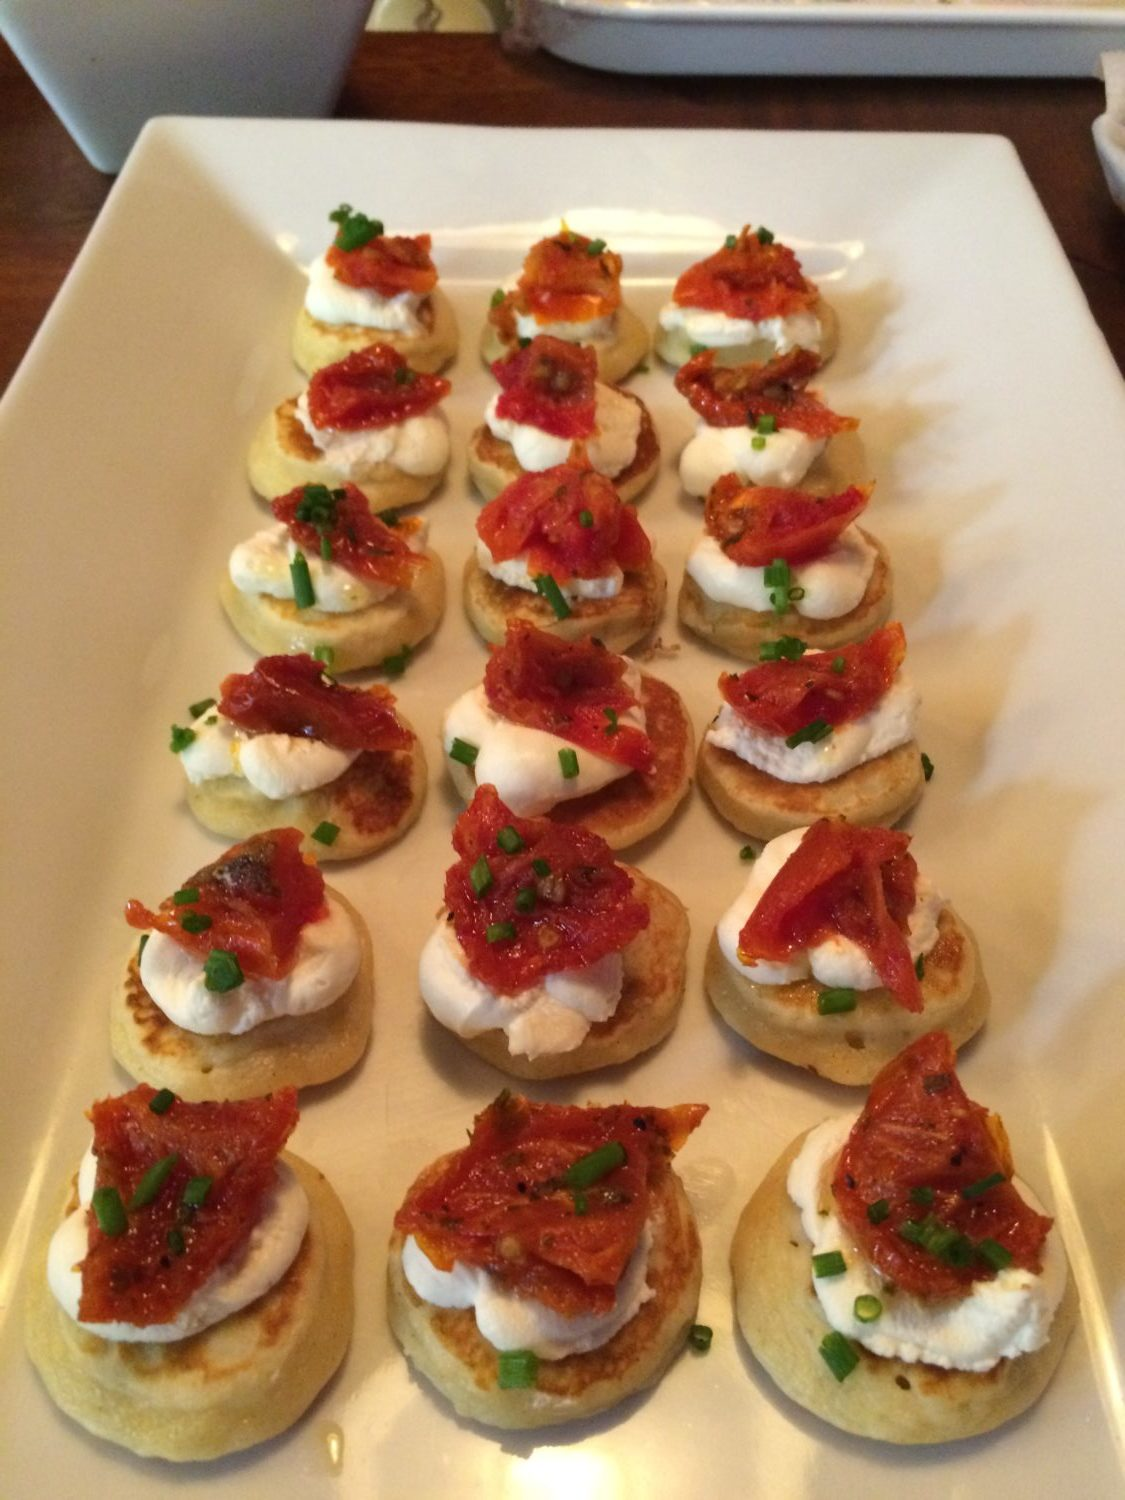 Canape Hh Starters And Canapé Images Catering Company In Sussex